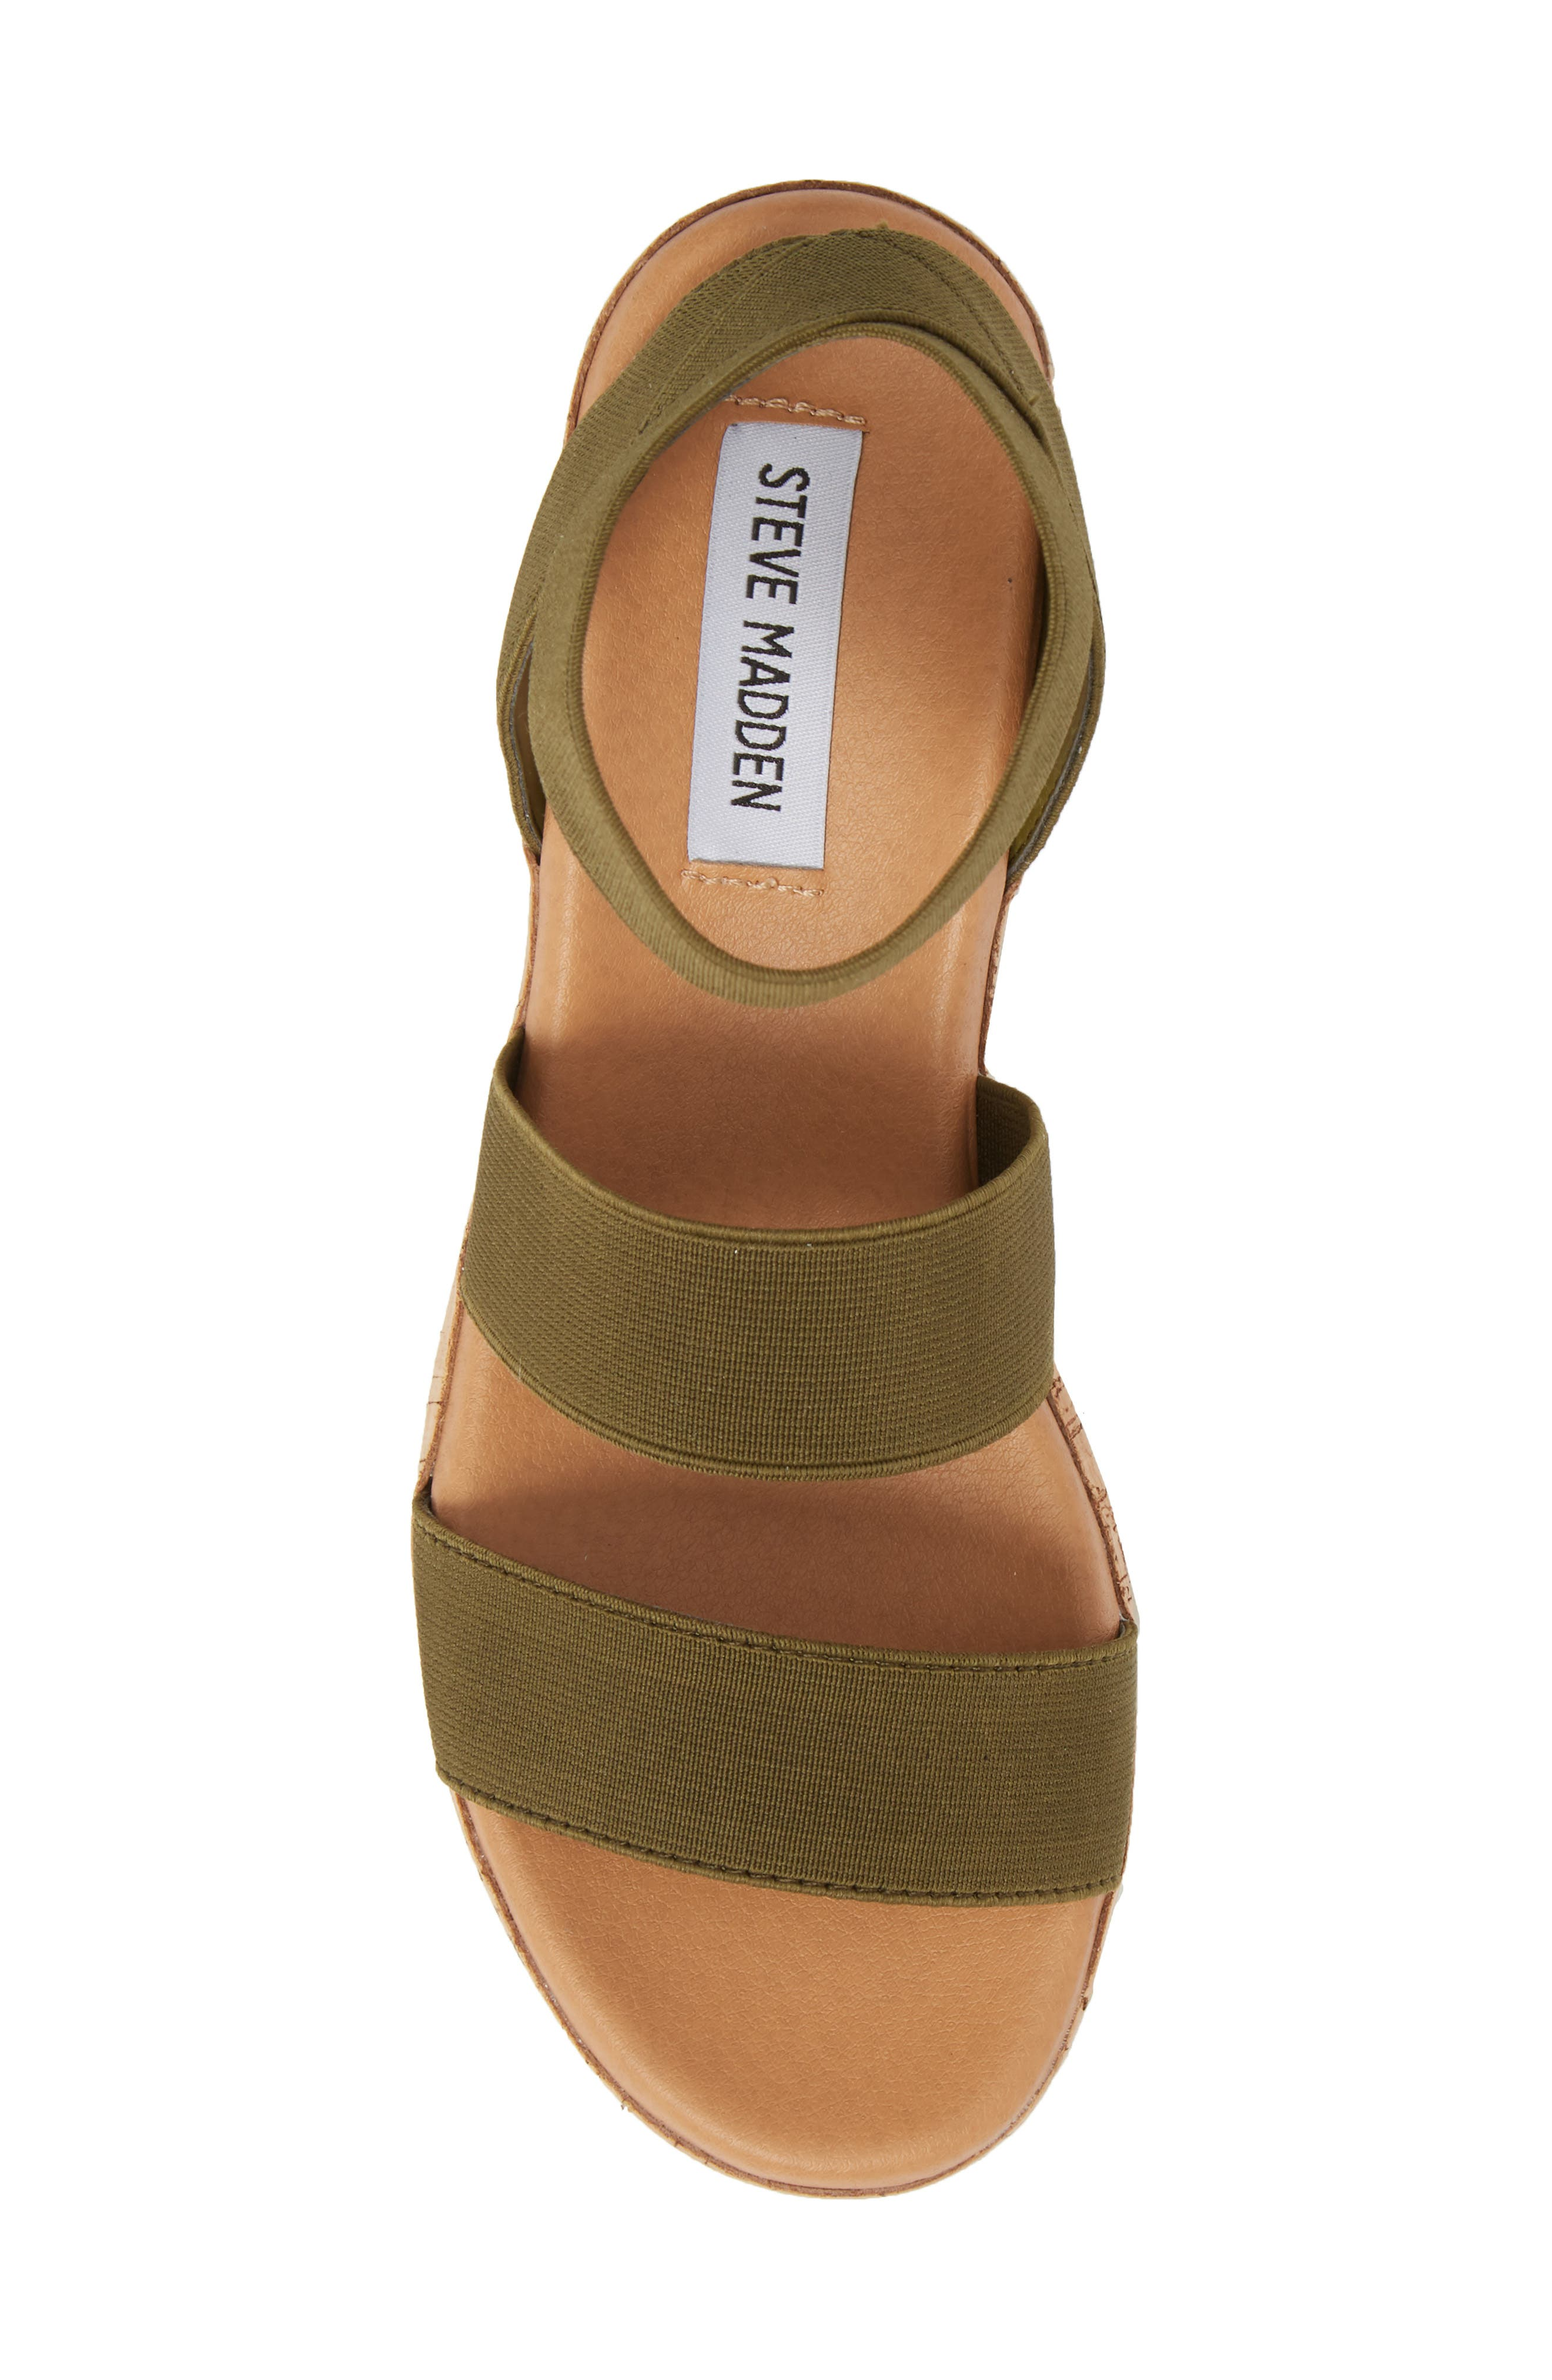 STEVE MADDEN, Bandi Platform Wedge Sandal, Alternate thumbnail 5, color, OLIVE